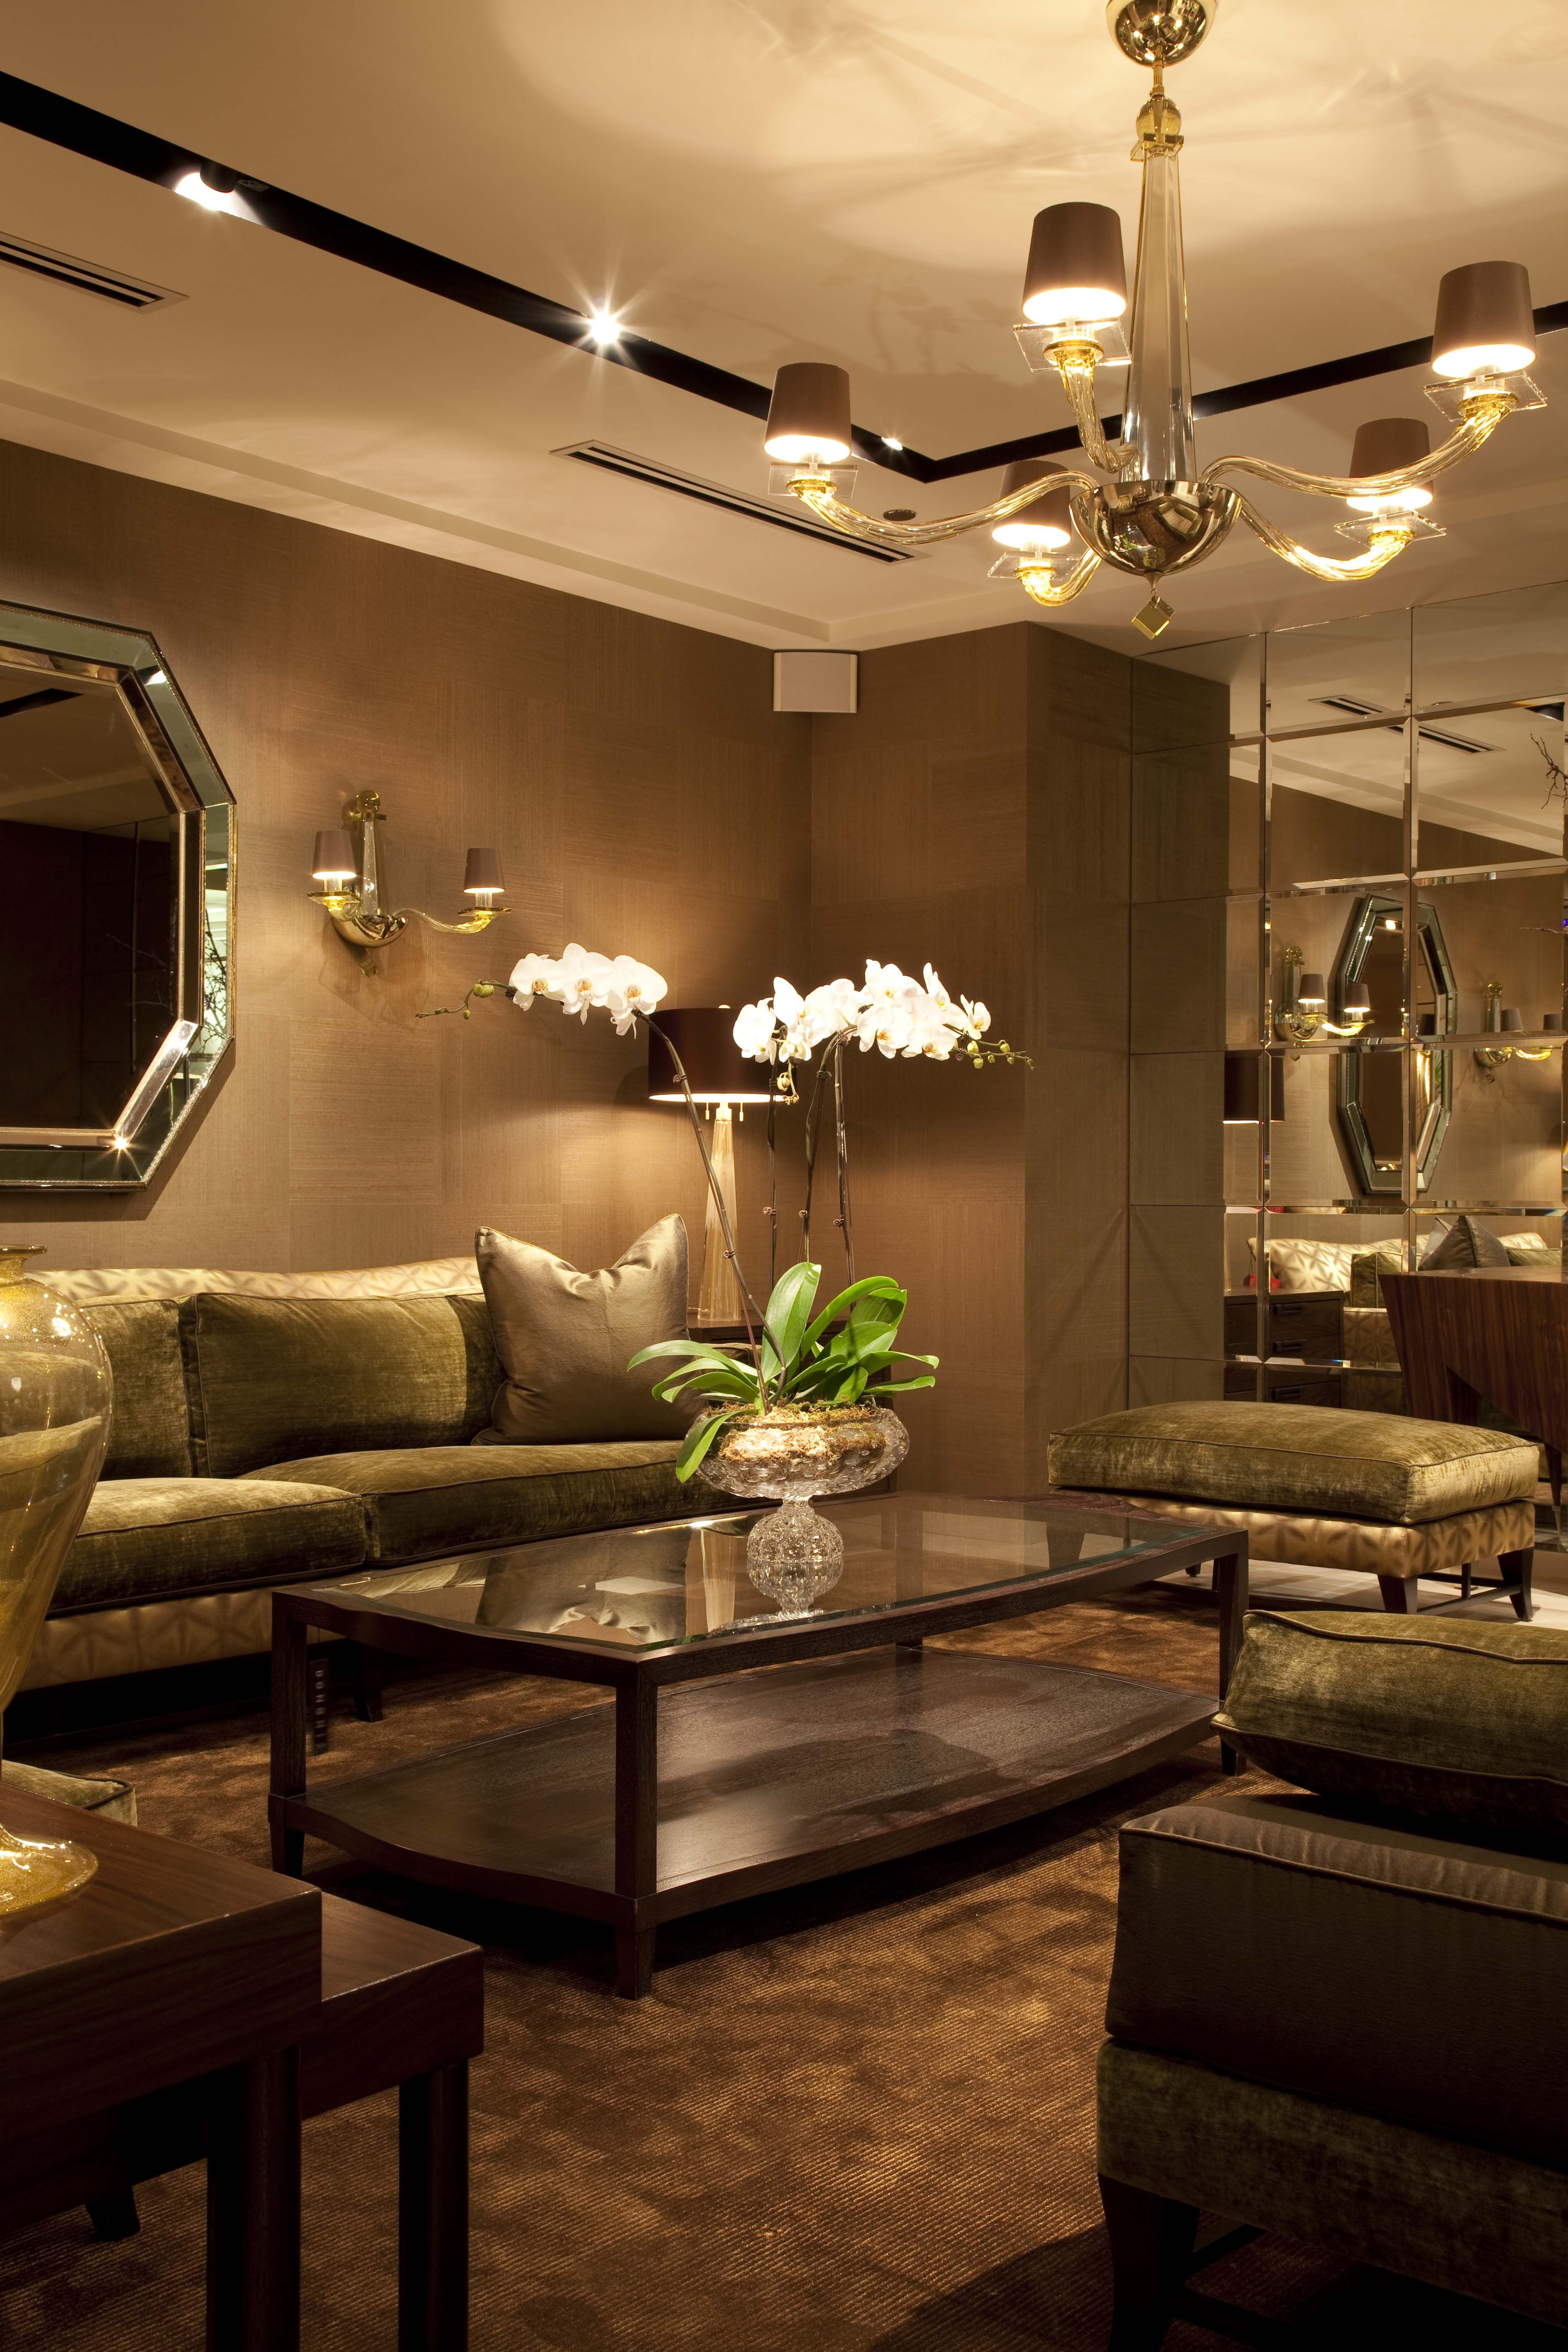 Victoire Room by Donghia Luxurious interior design ideas perfect for ...